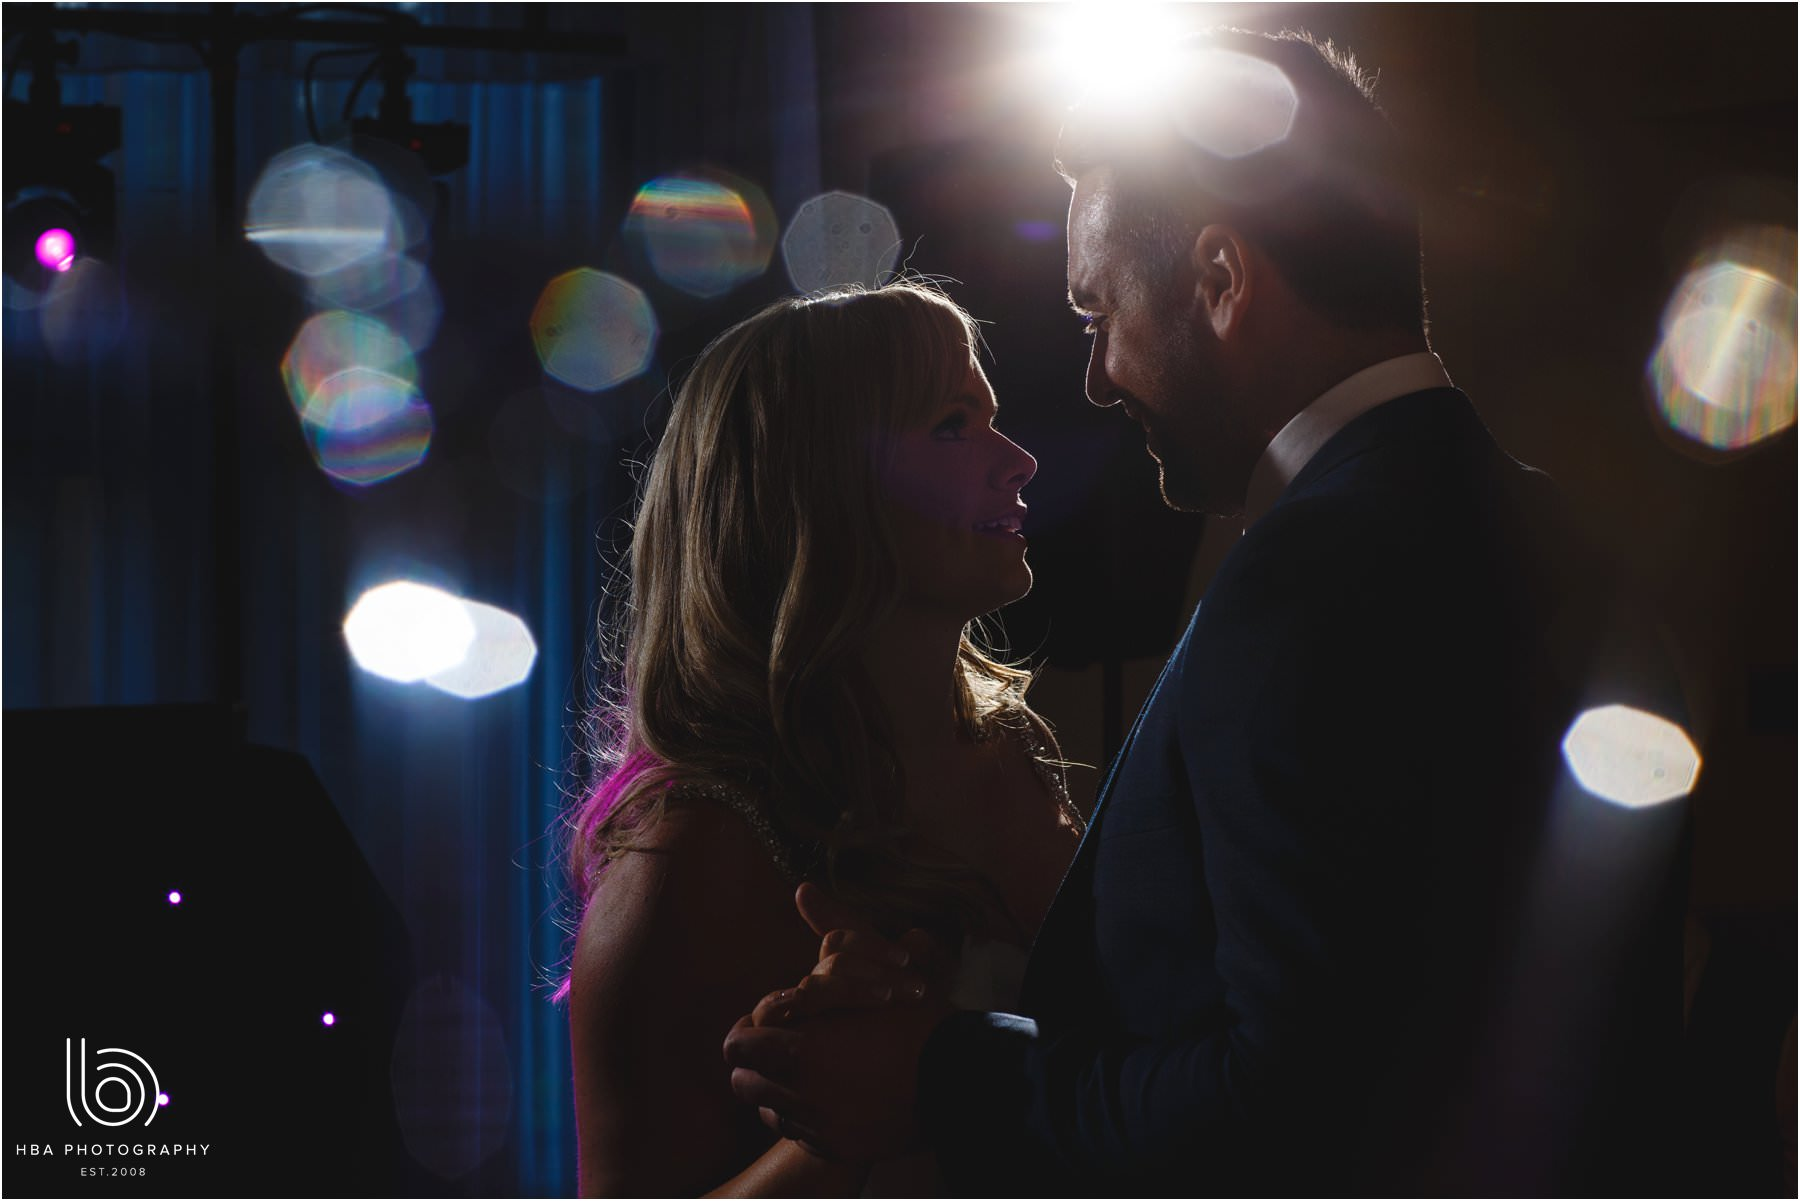 The bride & groom's first dance at Whirlowbrook Hall